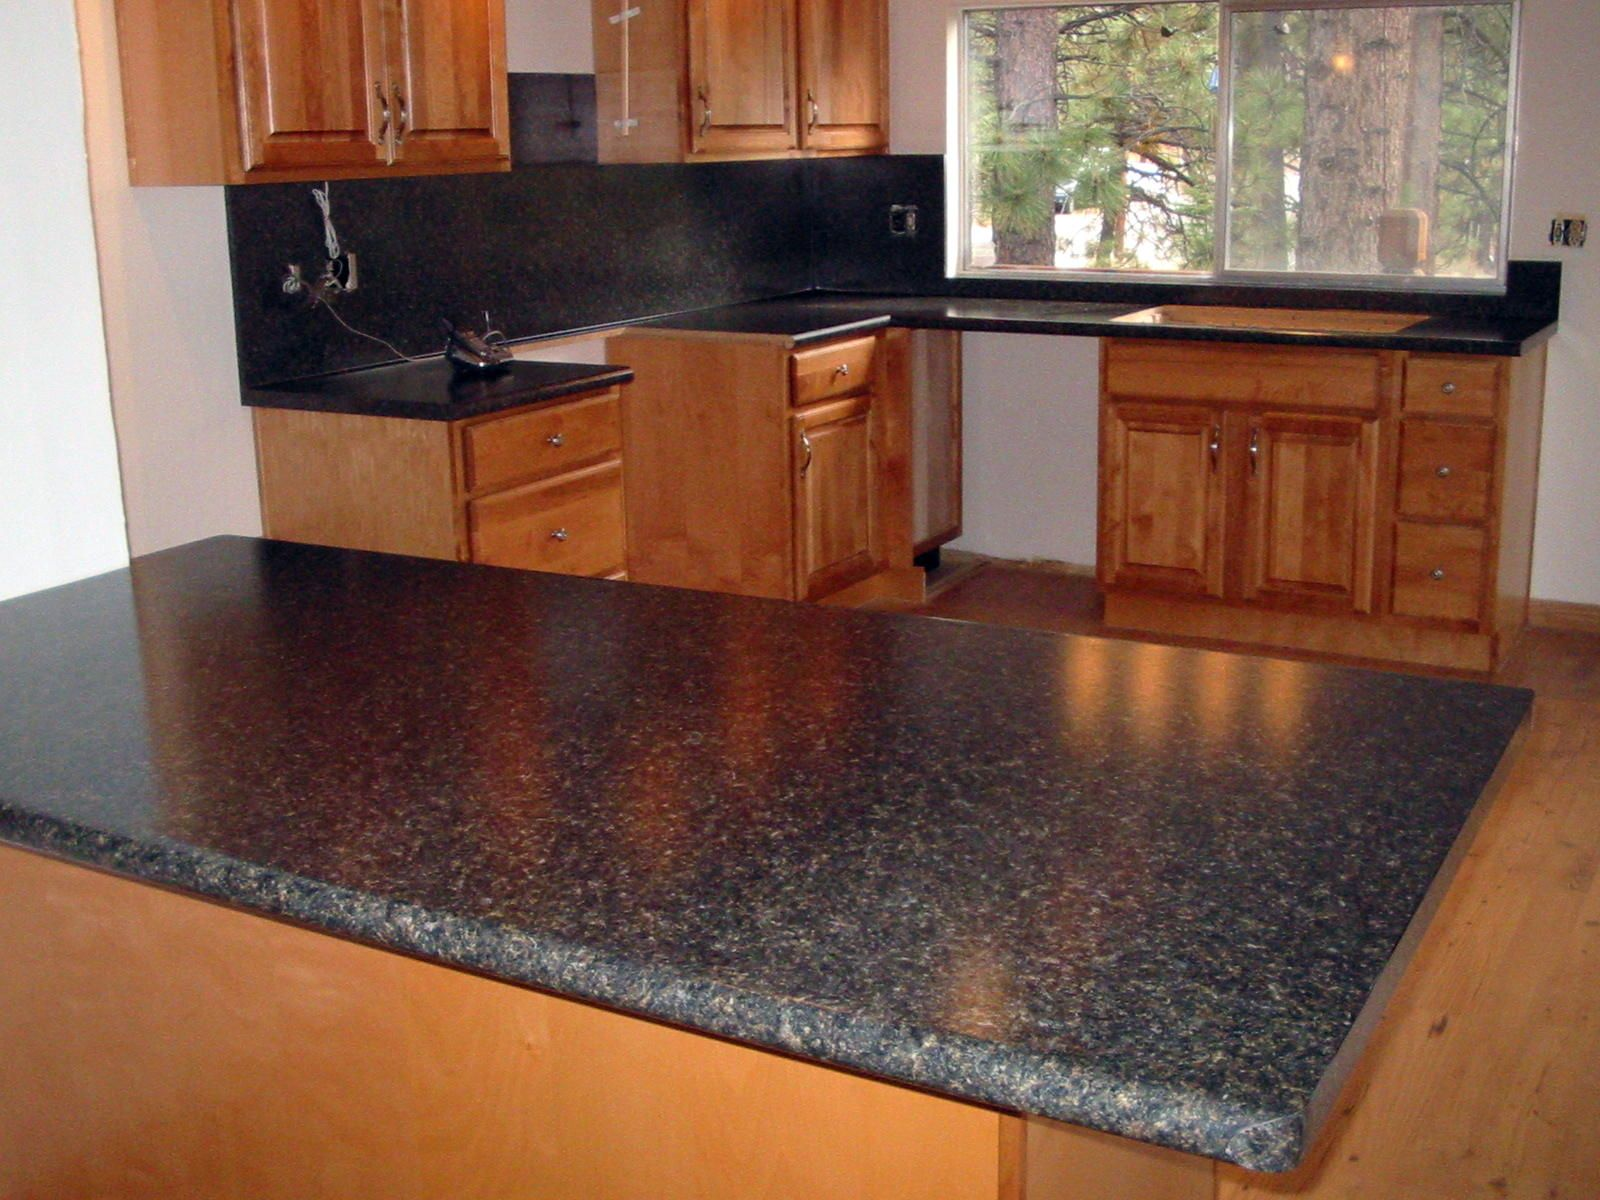 Laminate Kitchen Backsplash Formica Backsplash Edge And Coved Waterfall